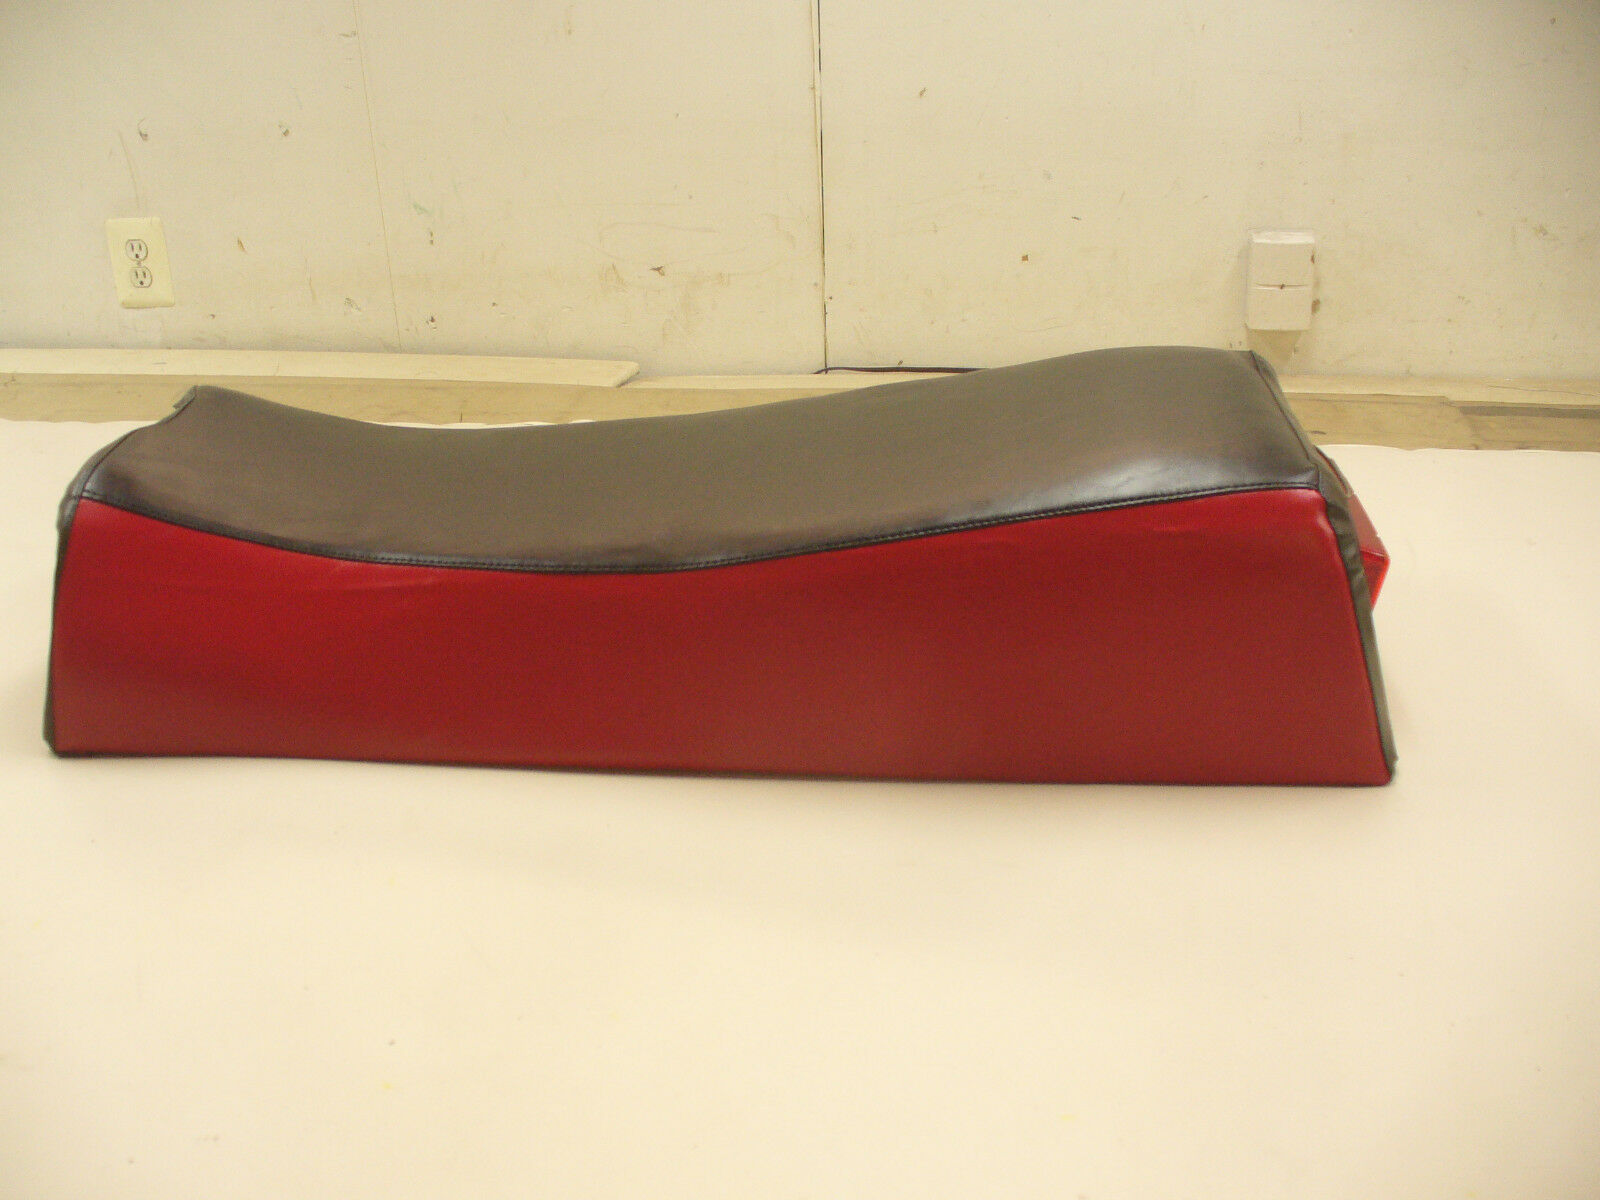 1973-1975 VINTAGE YAMAHA  RED BLK GP-292 SNOWMOBILE SEAT COVER NEW